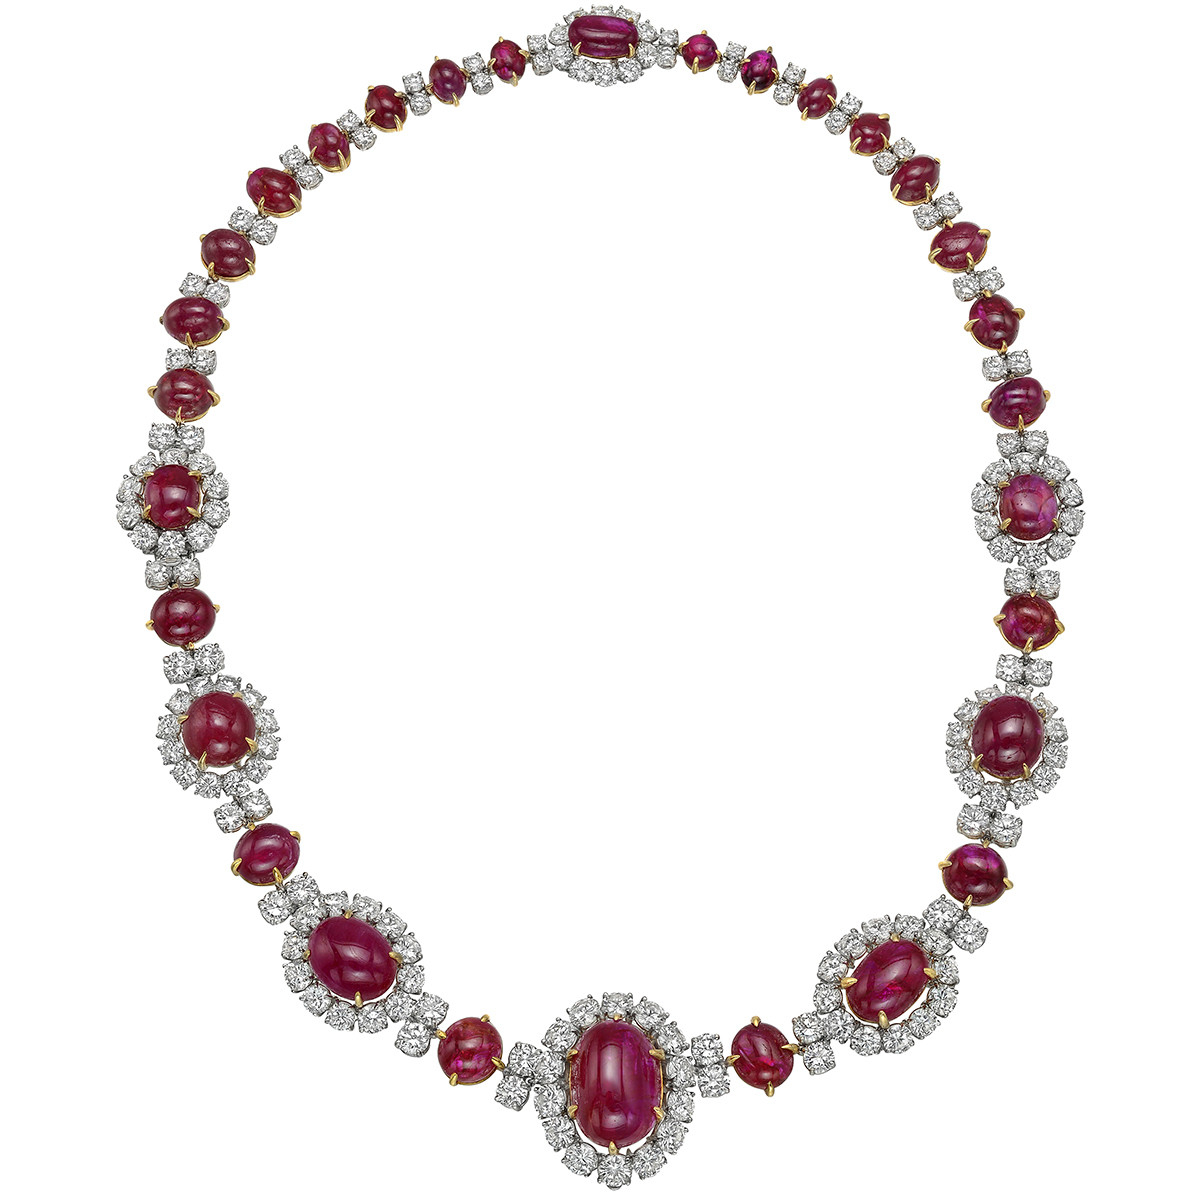 Van Cleef & Arpels Ruby Diamond Cluster Necklace | Betteridge Intended For 2020 Ruby And Diamond Cluster Necklaces (View 17 of 25)